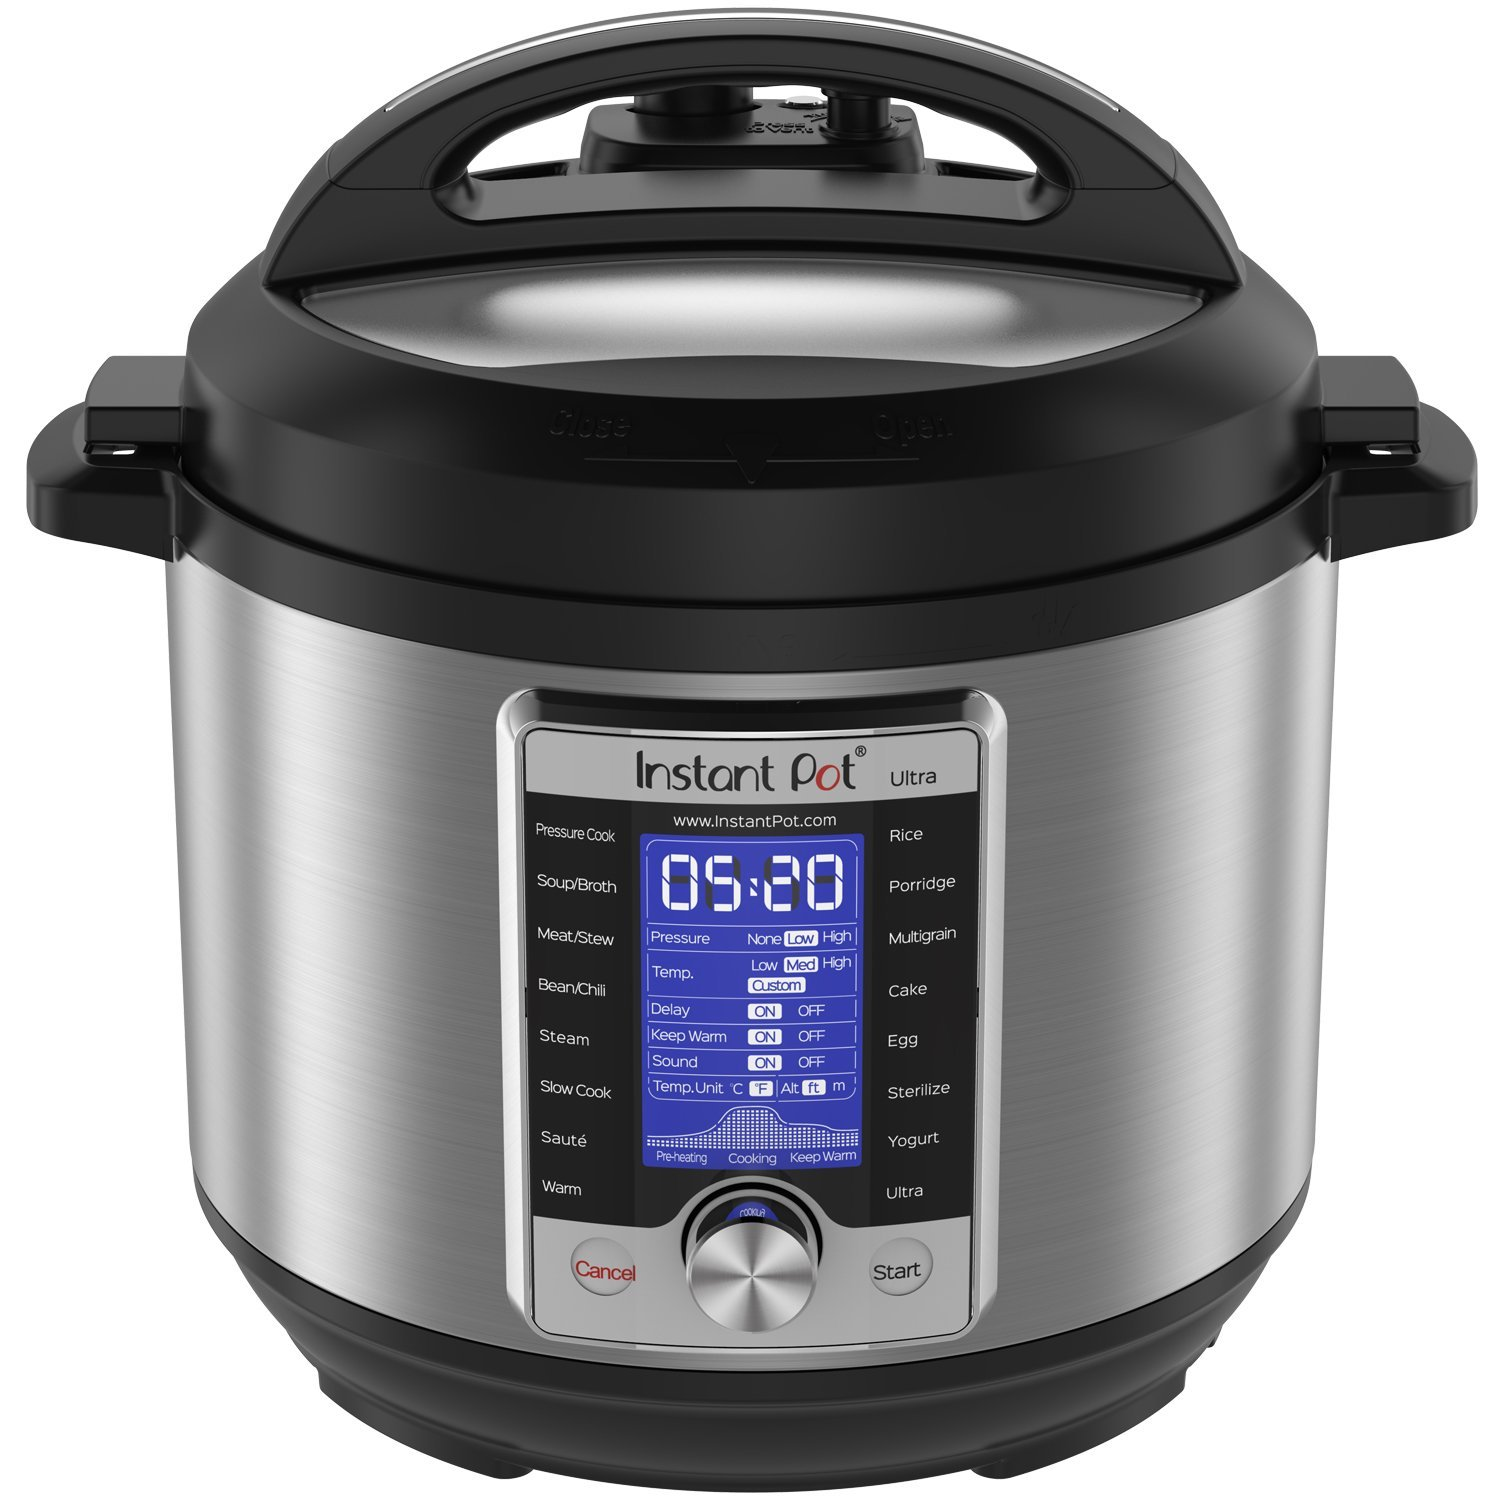 Review of Instant Pot Ultra 6 Qt 10-in-1 Multi- Use Programmable (Instapot)